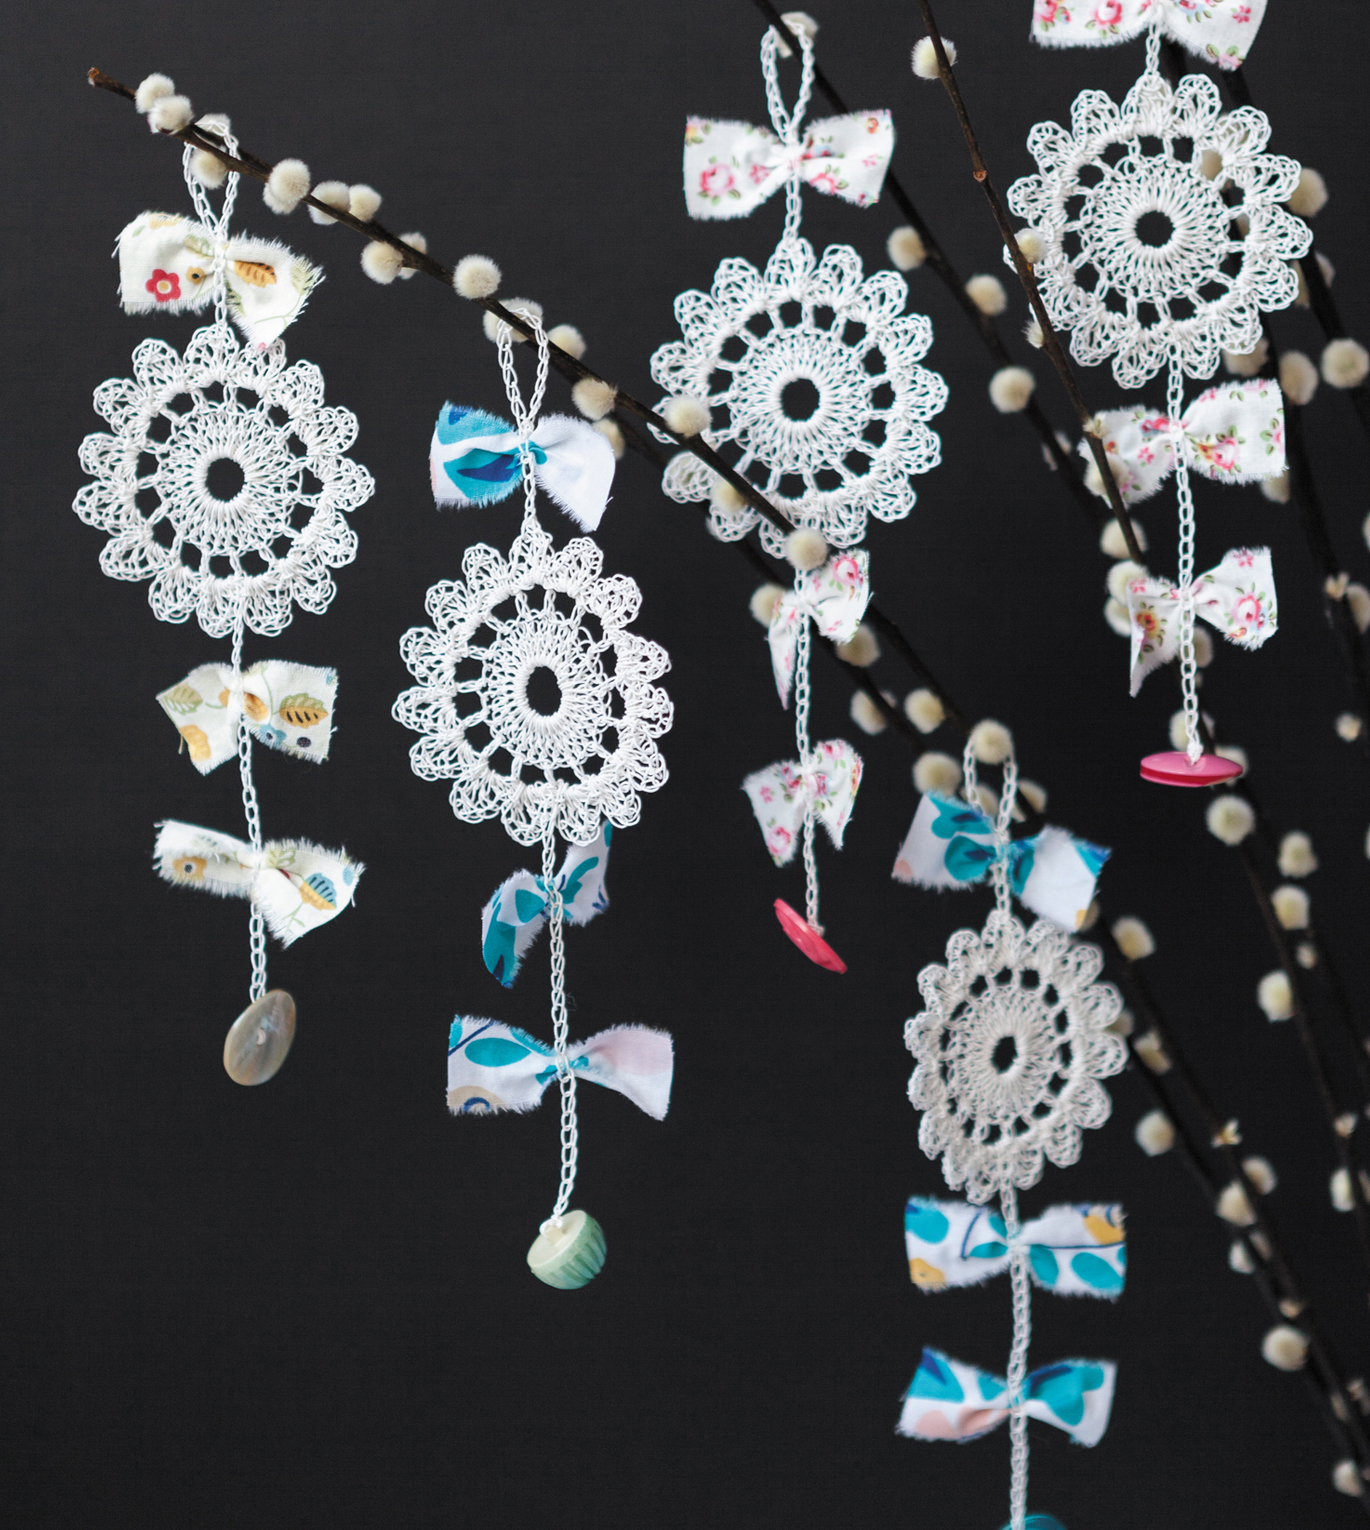 Paper Flower Charms from Crochet Home by Emma Lamb